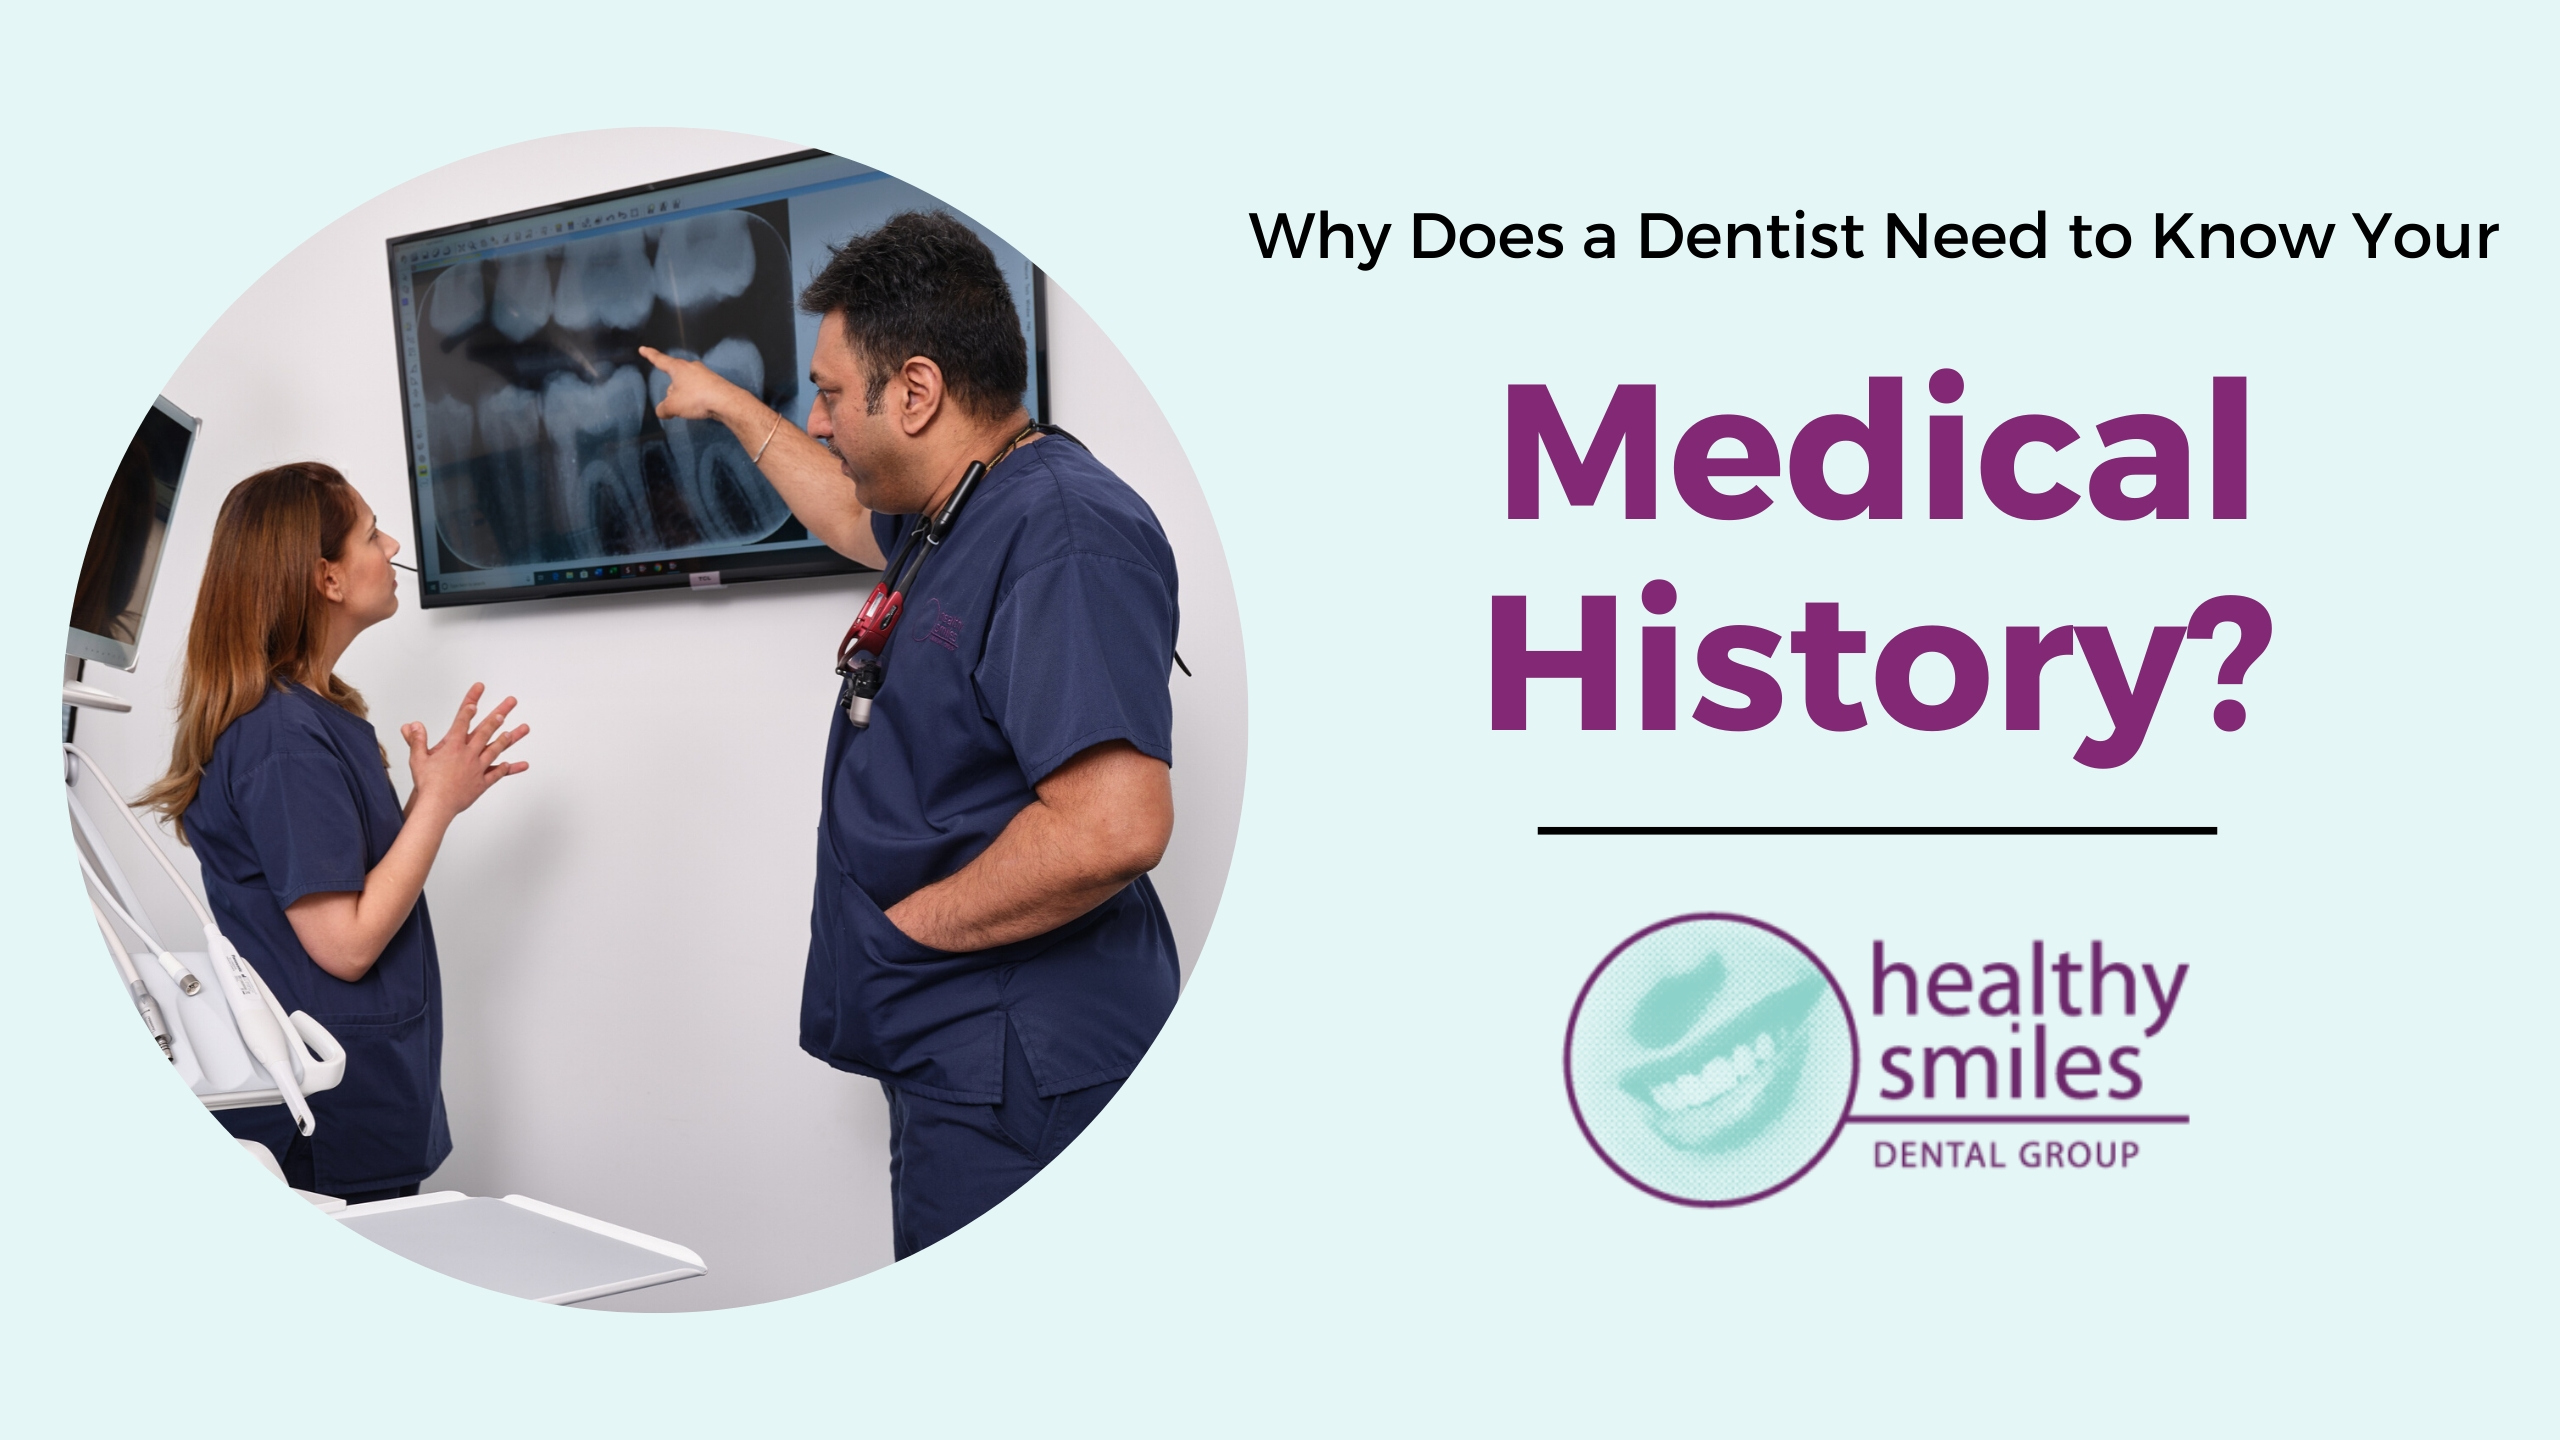 Why Does a Dentist Need to Know Your Medical History